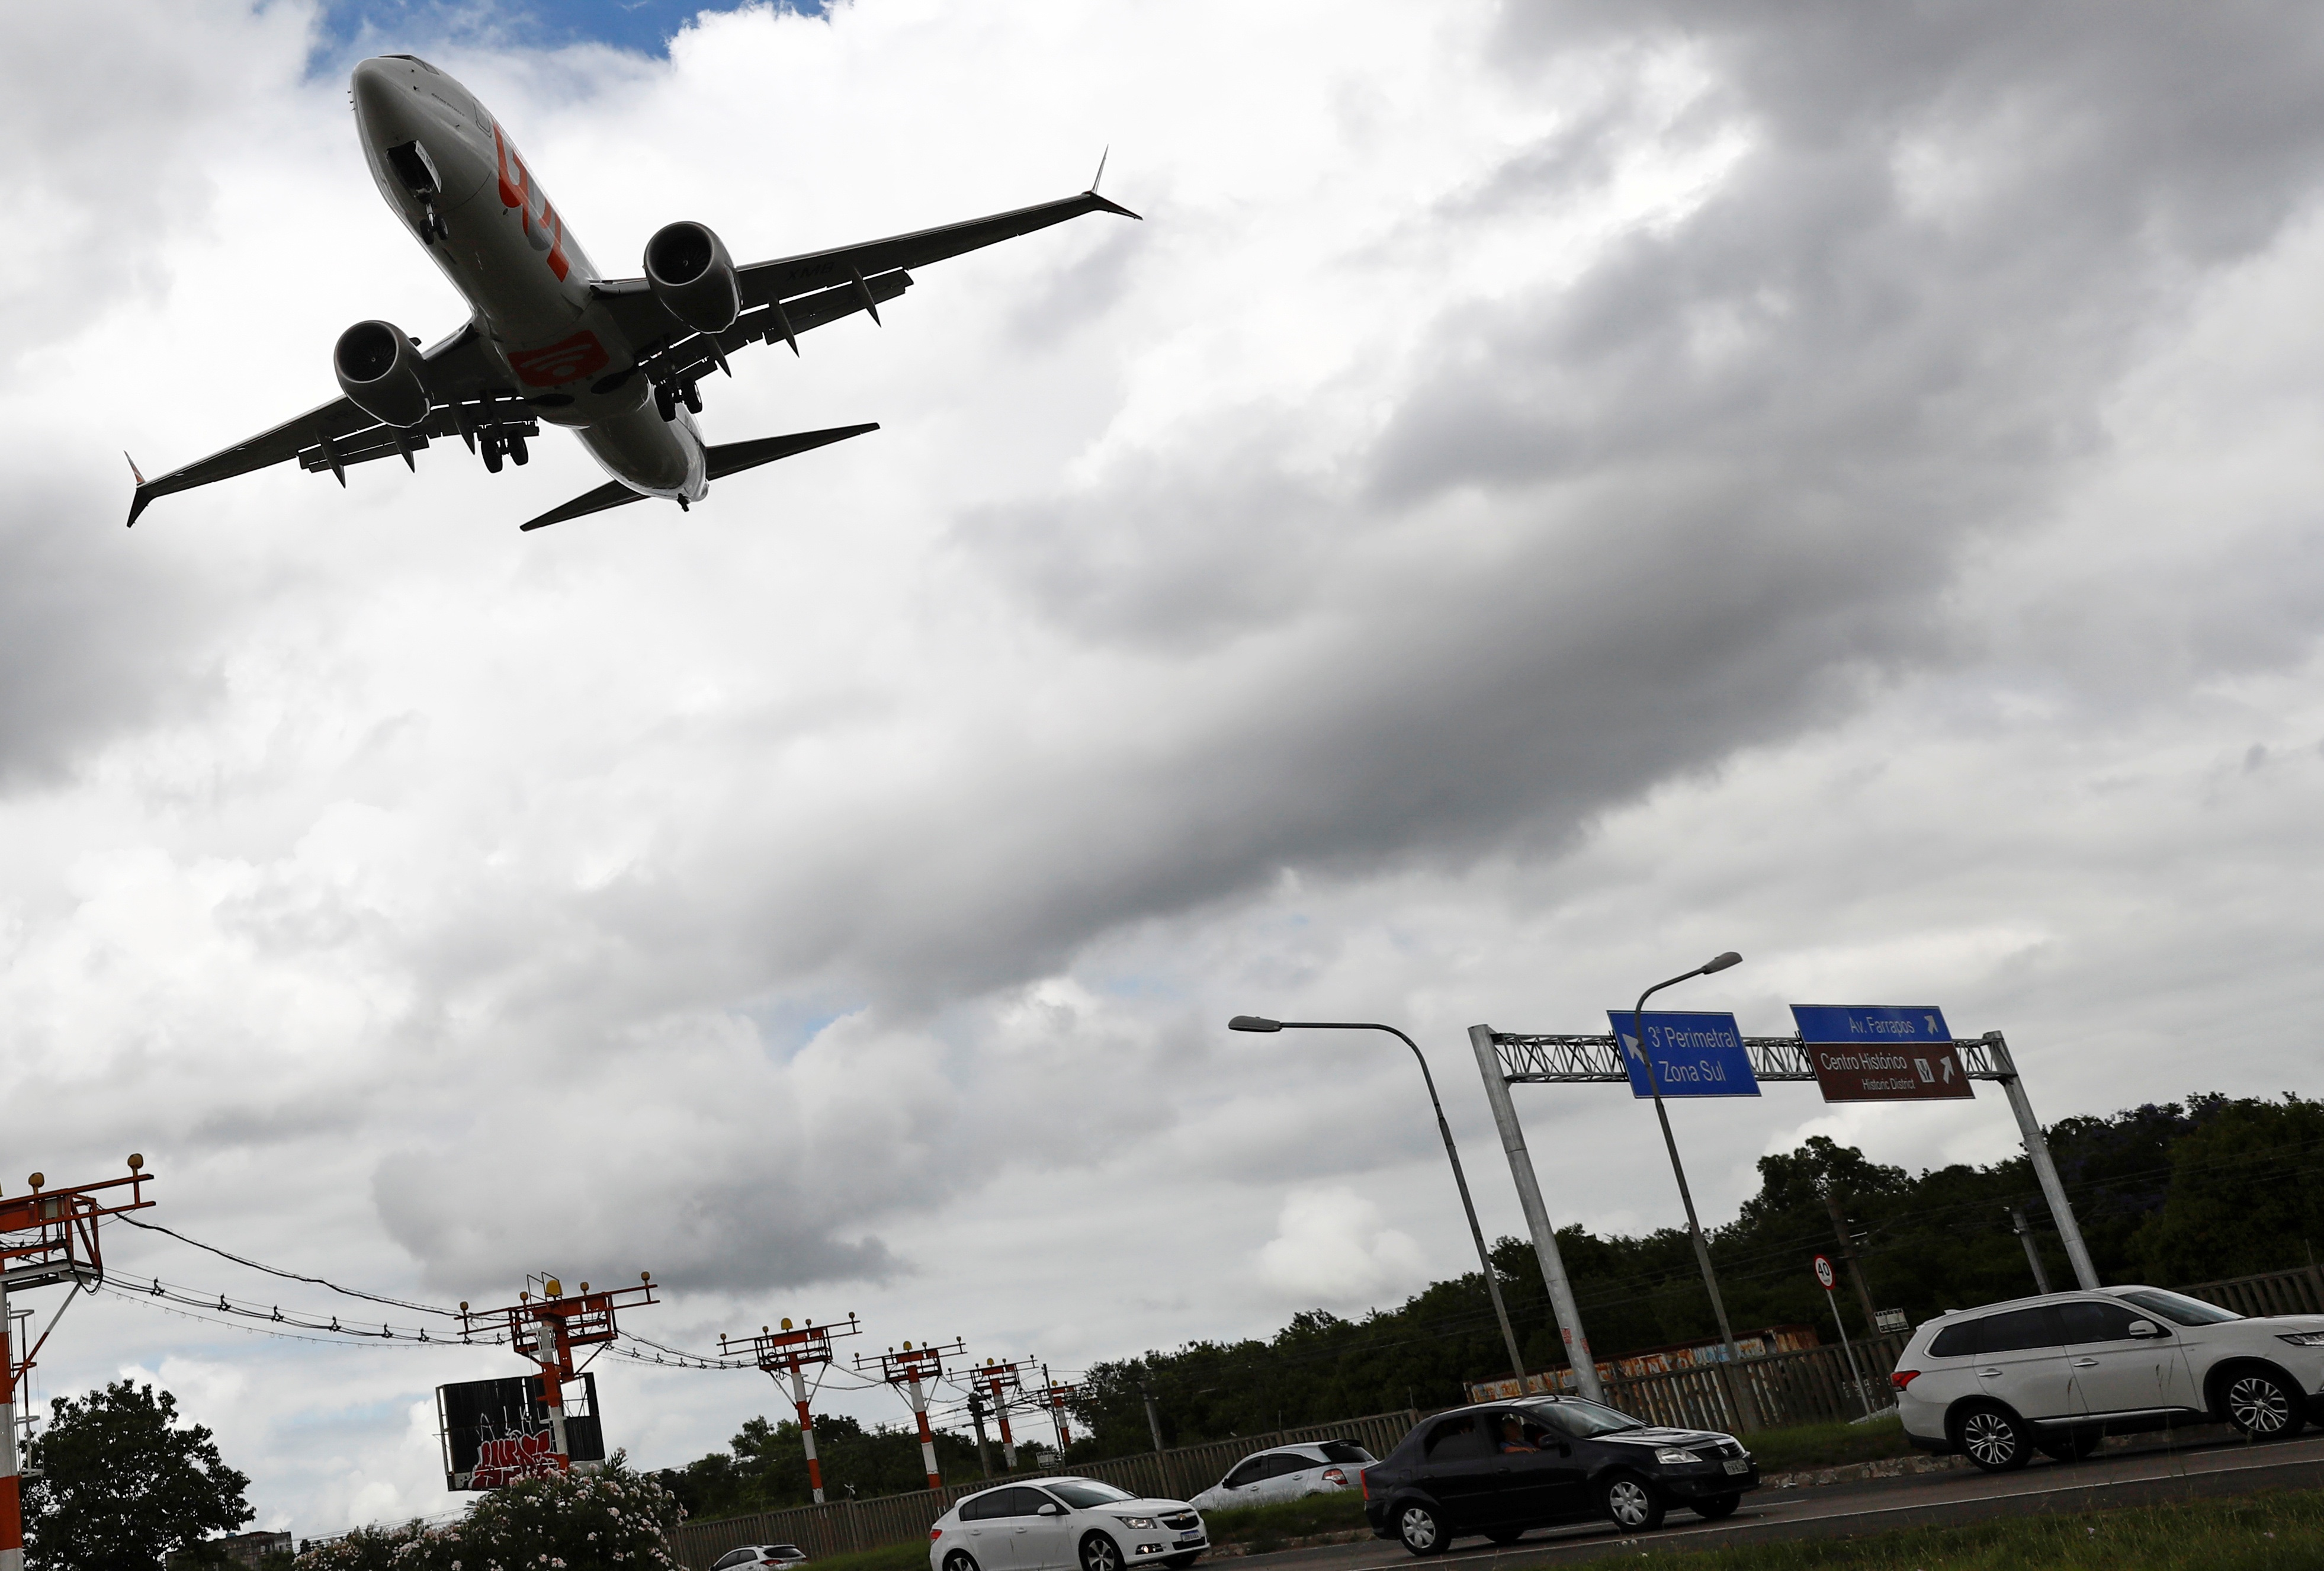 Boeing 737 MAX makes first U.S. commercial flight since crashes